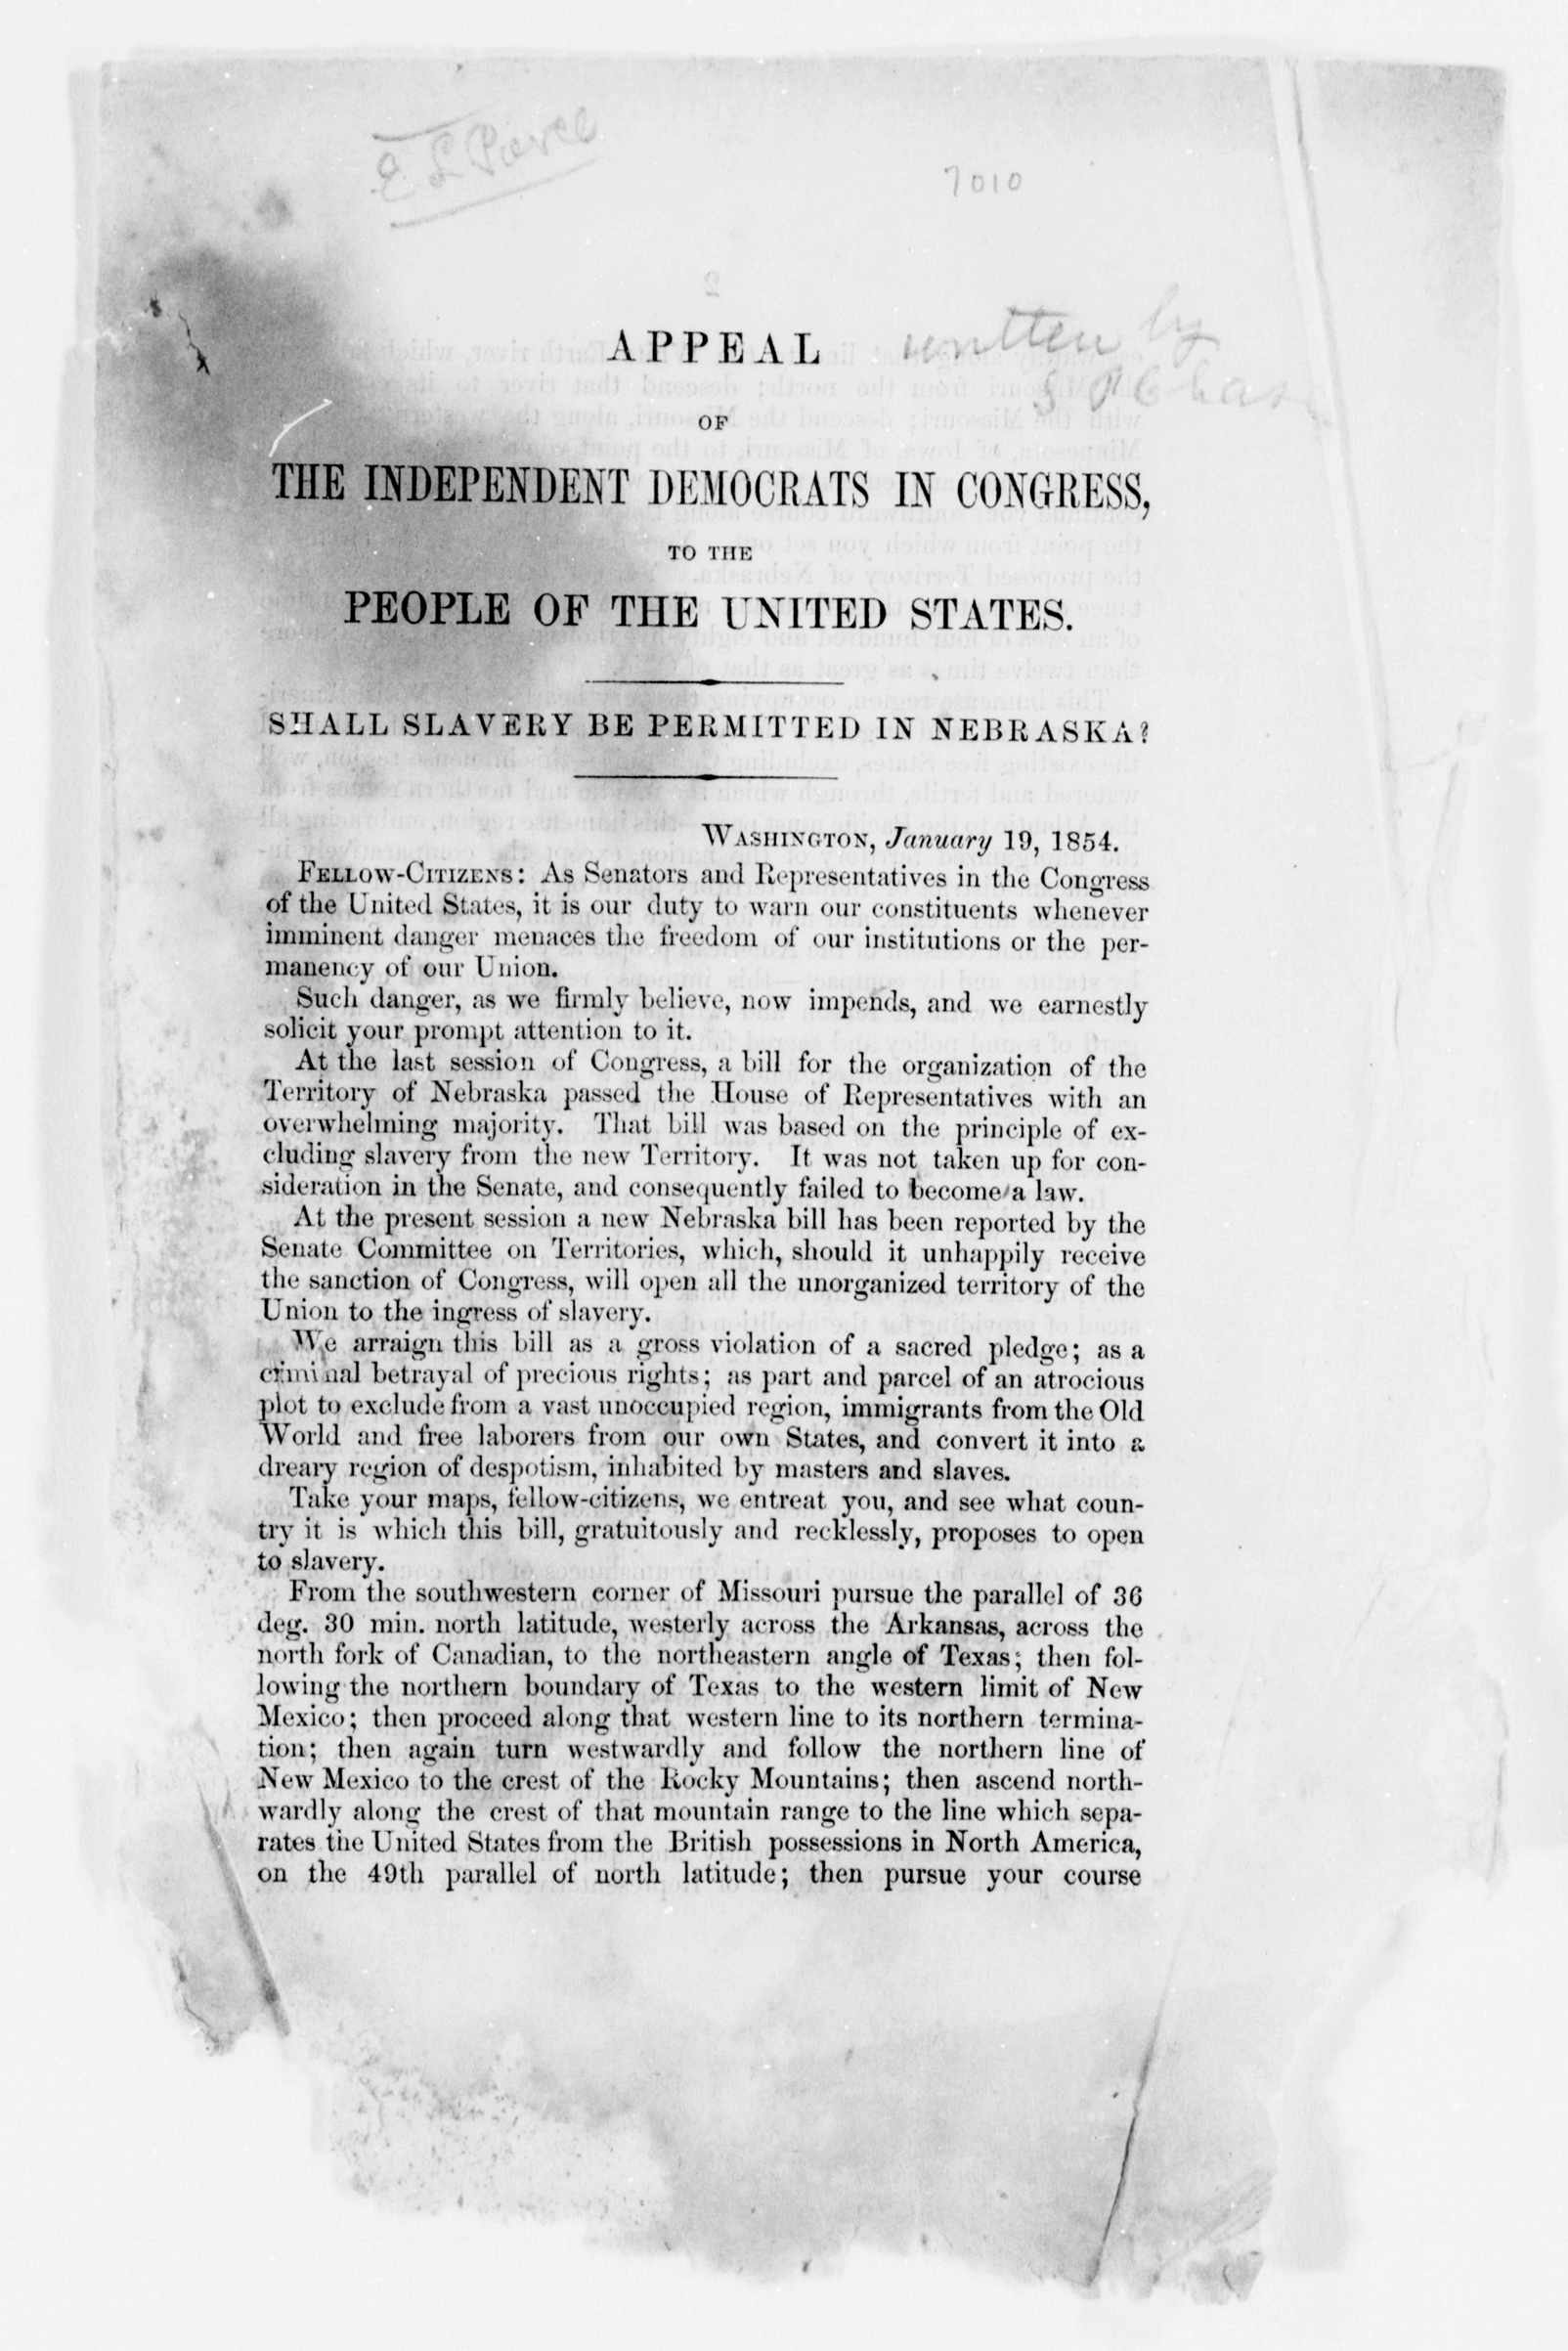 Appeal of the Independent Democrats in Congress to the People of the United States, 1854.